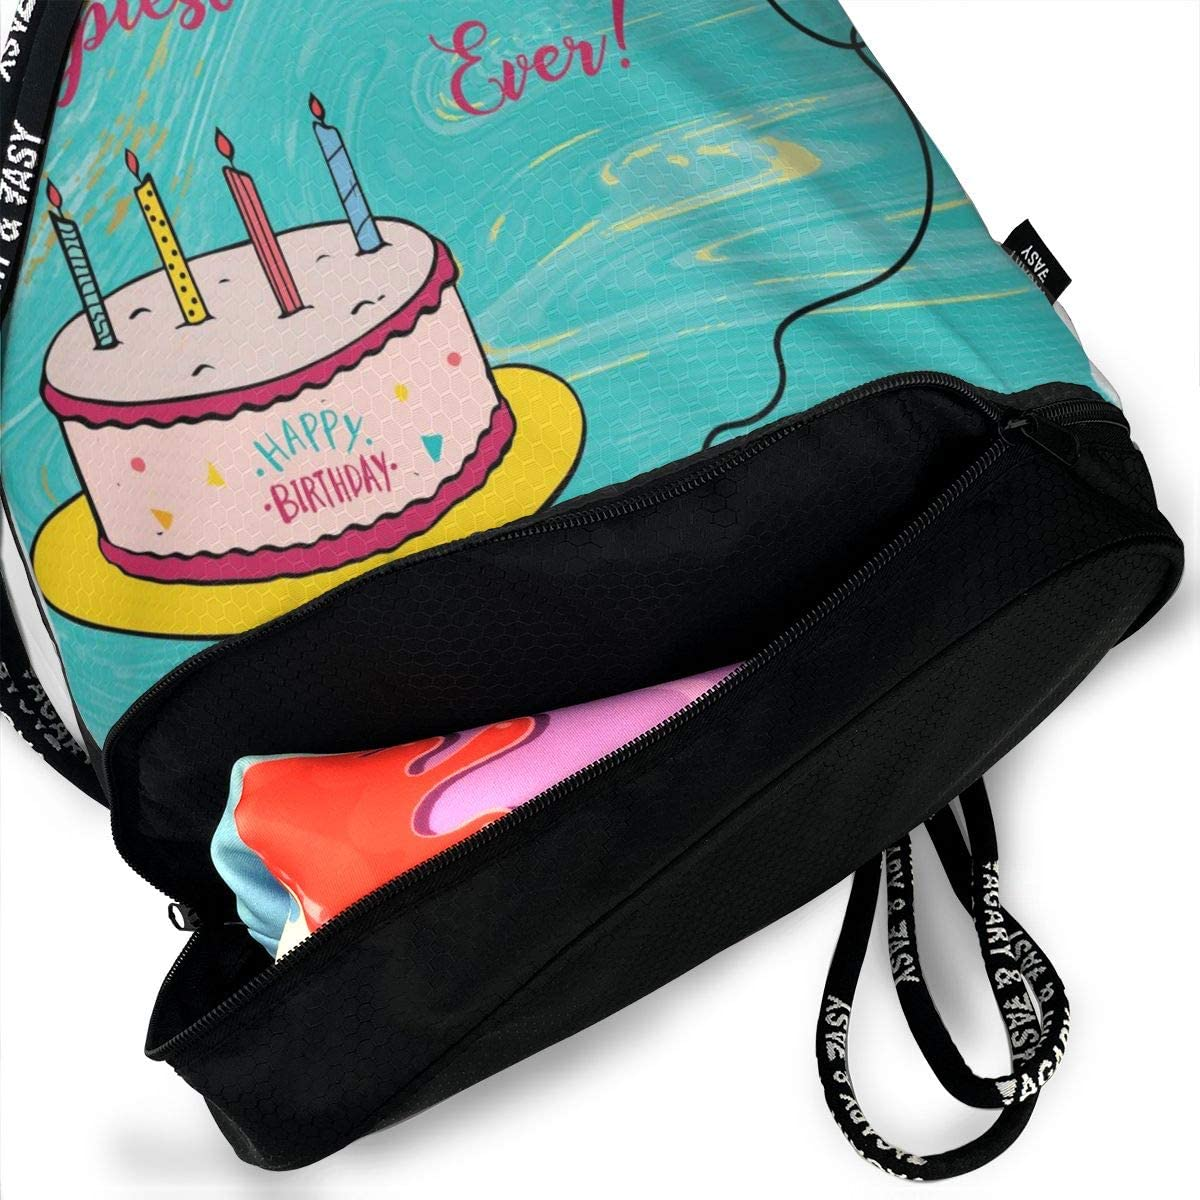 Happy Birthday Wishes Cakes Multifunctional Bundle Backpack Shoulder Bag For Men And Women